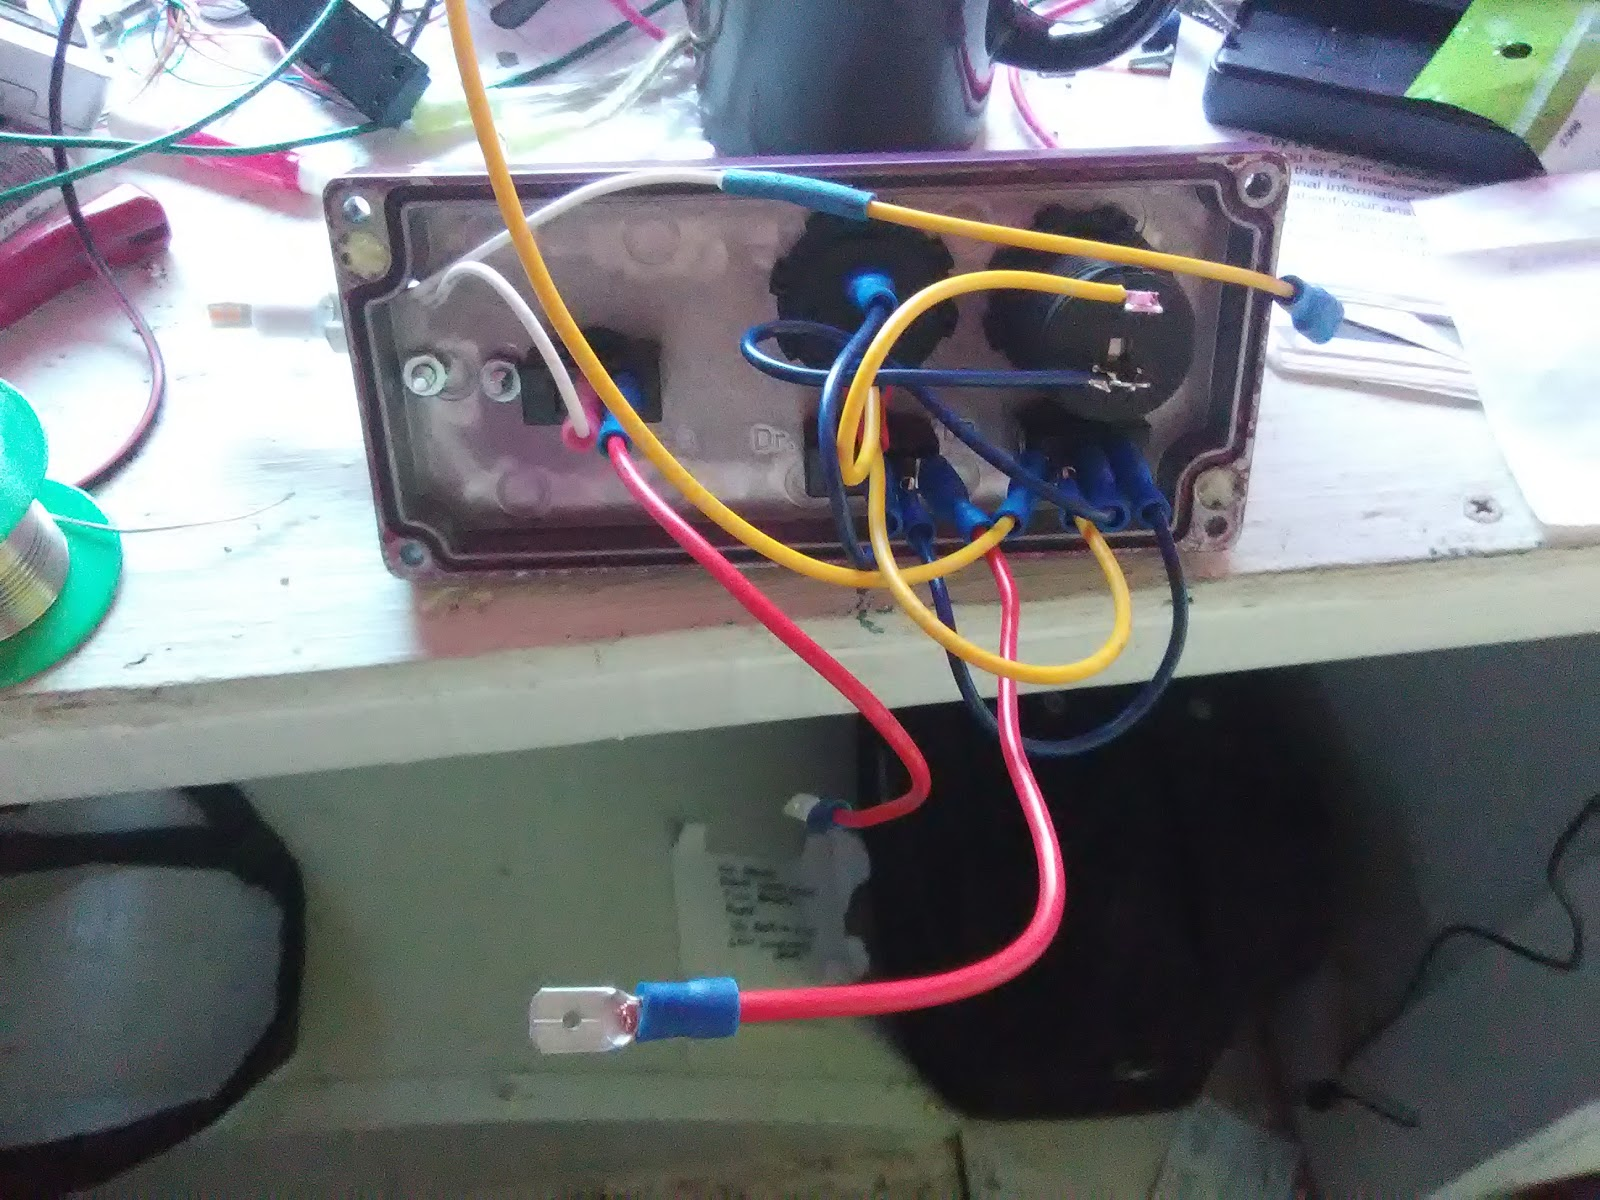 My Portable Home March 2018 Pull Out Fuse Box I Spent Quite A While Working On The Inside Of Totally Lacked Right Angled Connectors So At One Point Just Had To Soldering Iron